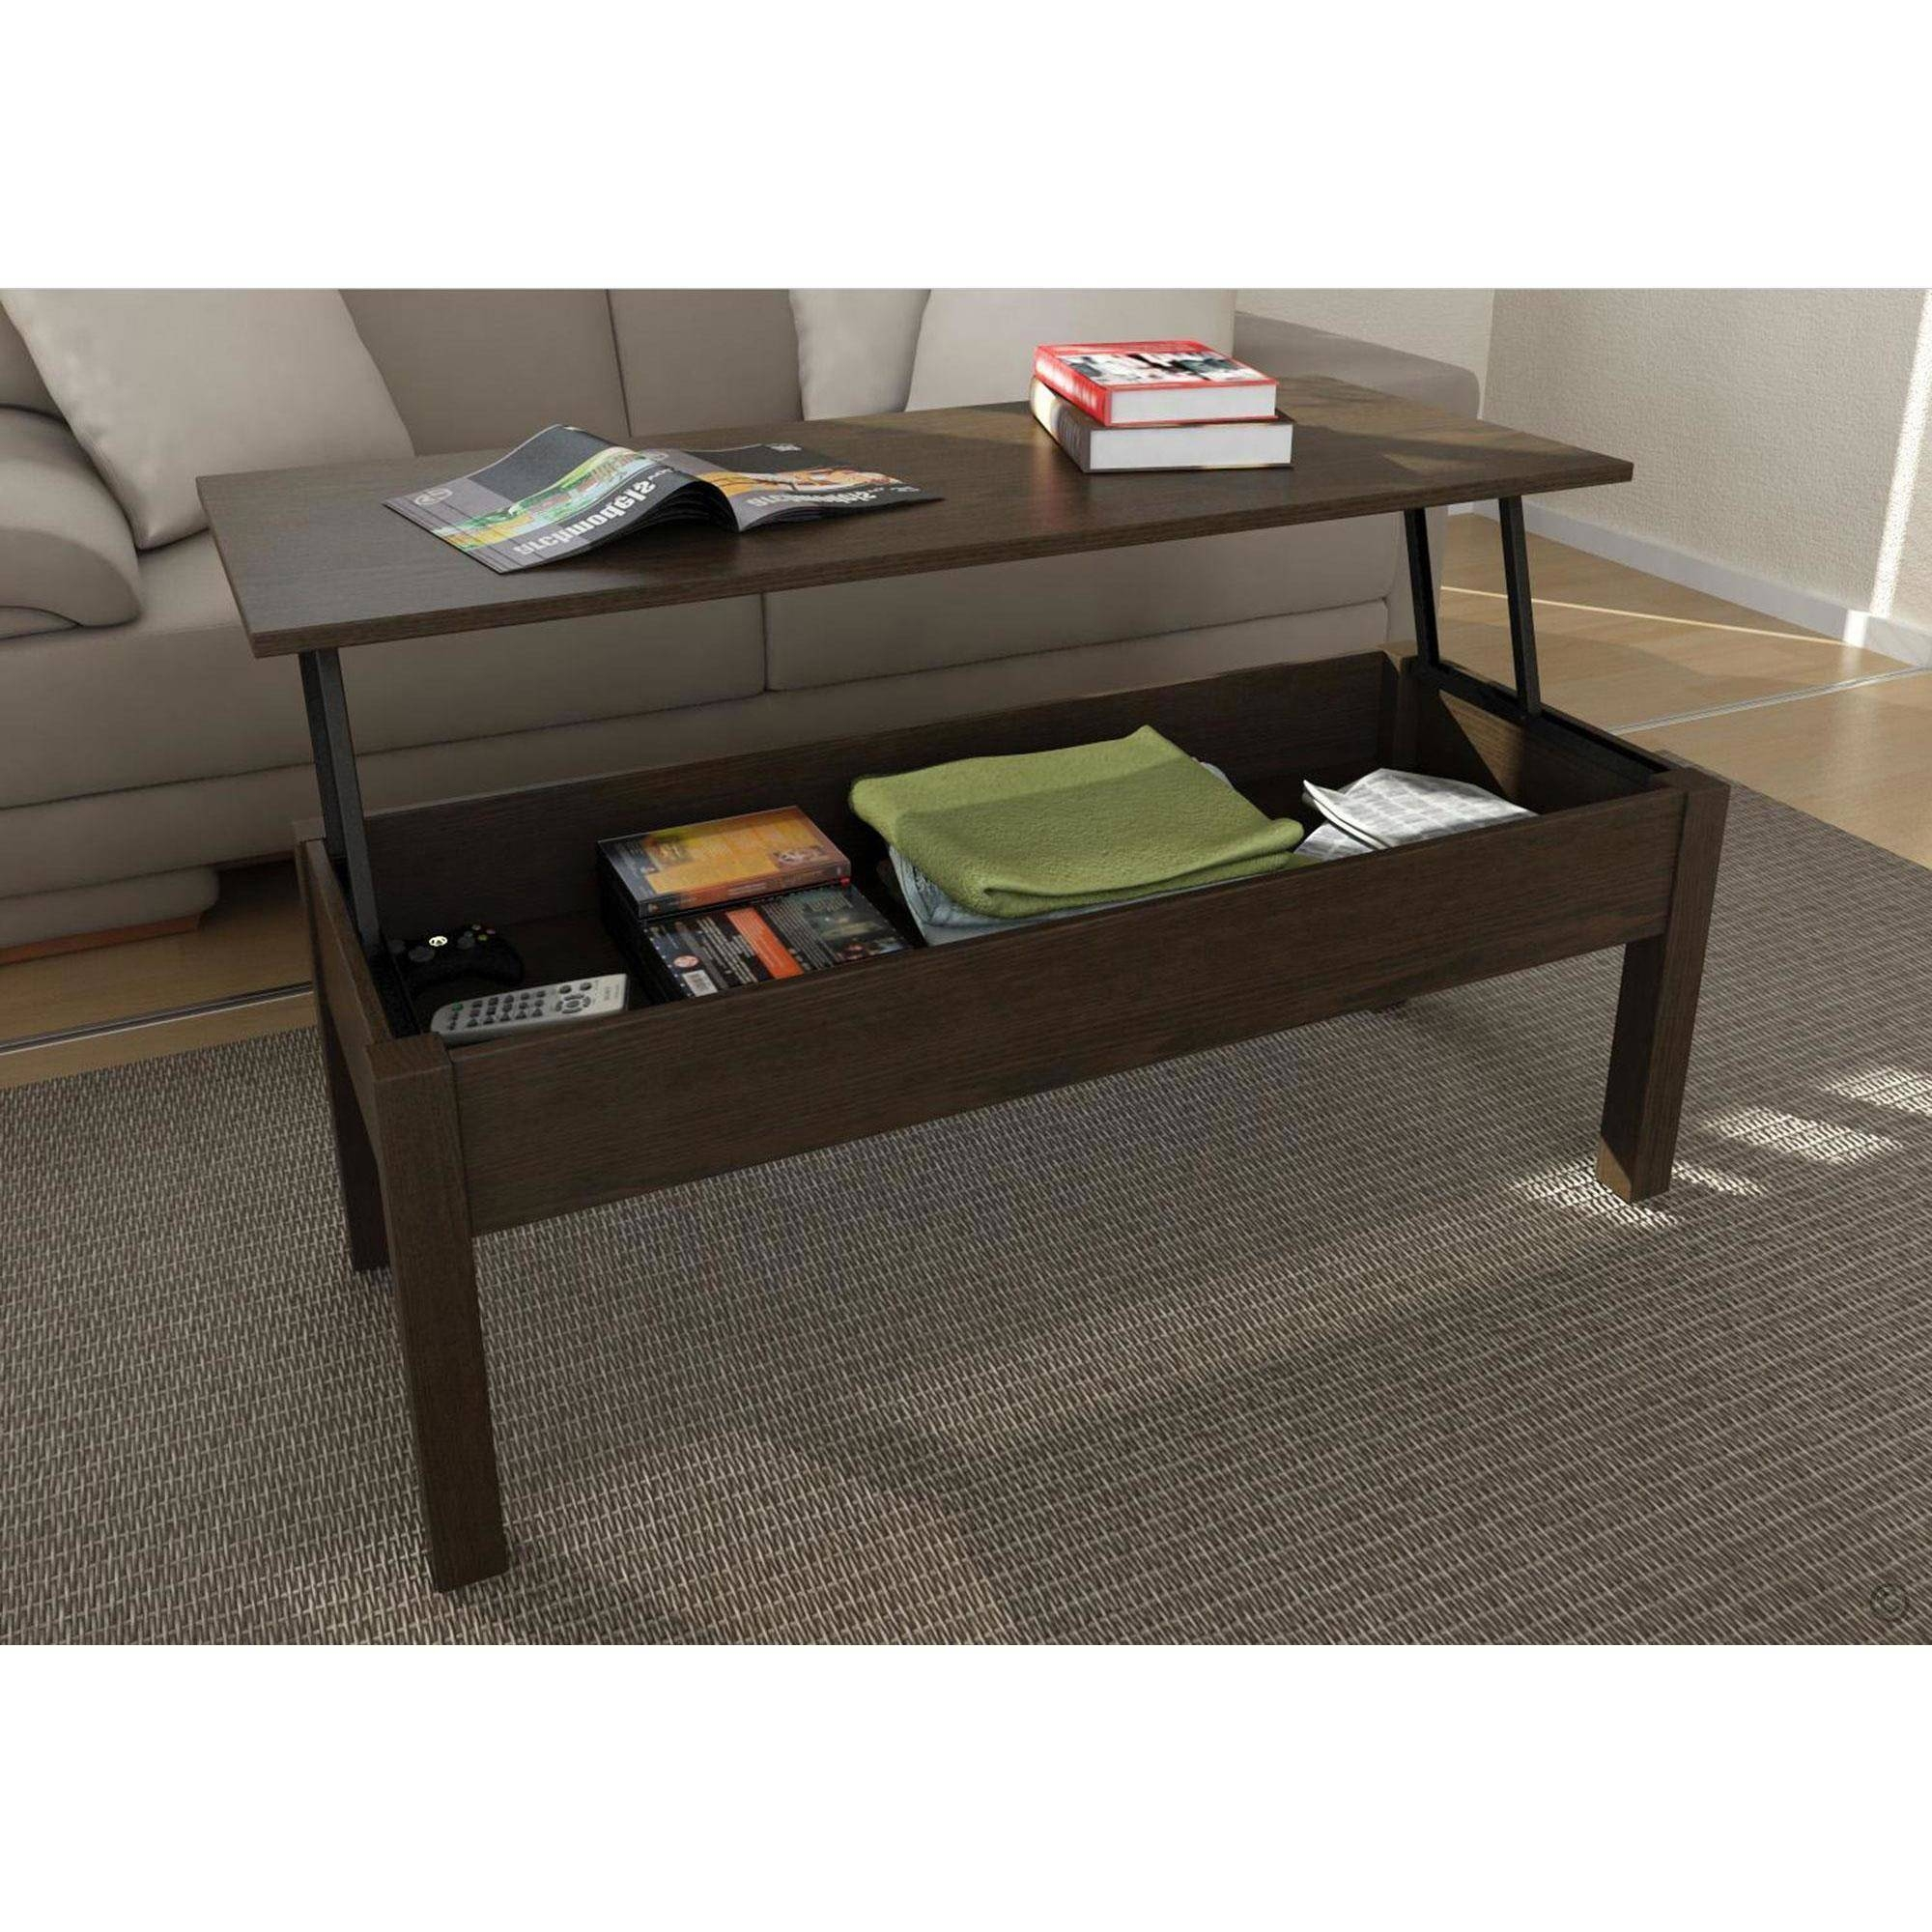 Mainstays Lift Top Coffee Table, Multiple Colors – Walmart With Regard To Lift Coffee Tables (View 16 of 30)